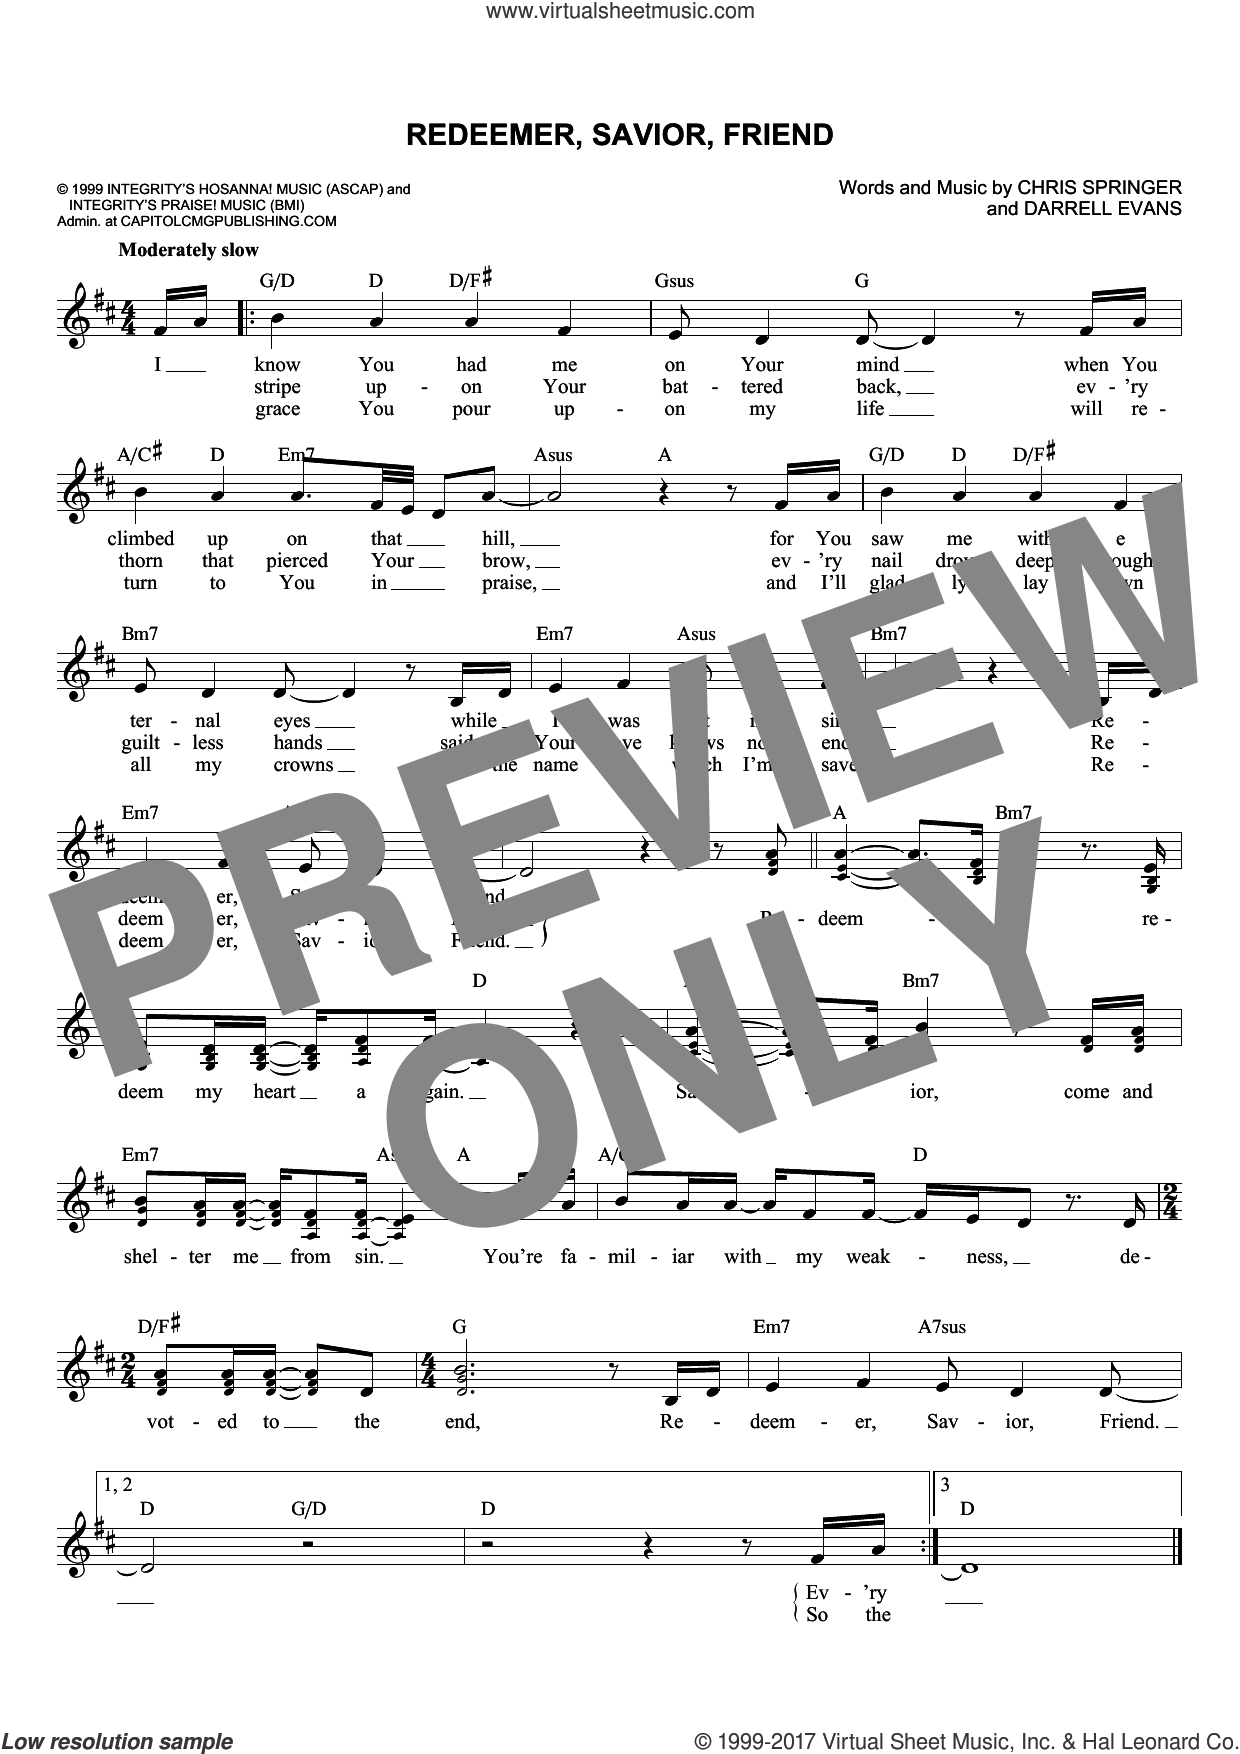 Redeemer, Savior, Friend sheet music for voice and other instruments (fake book) by Chris Springer and Darrell Evans, intermediate skill level